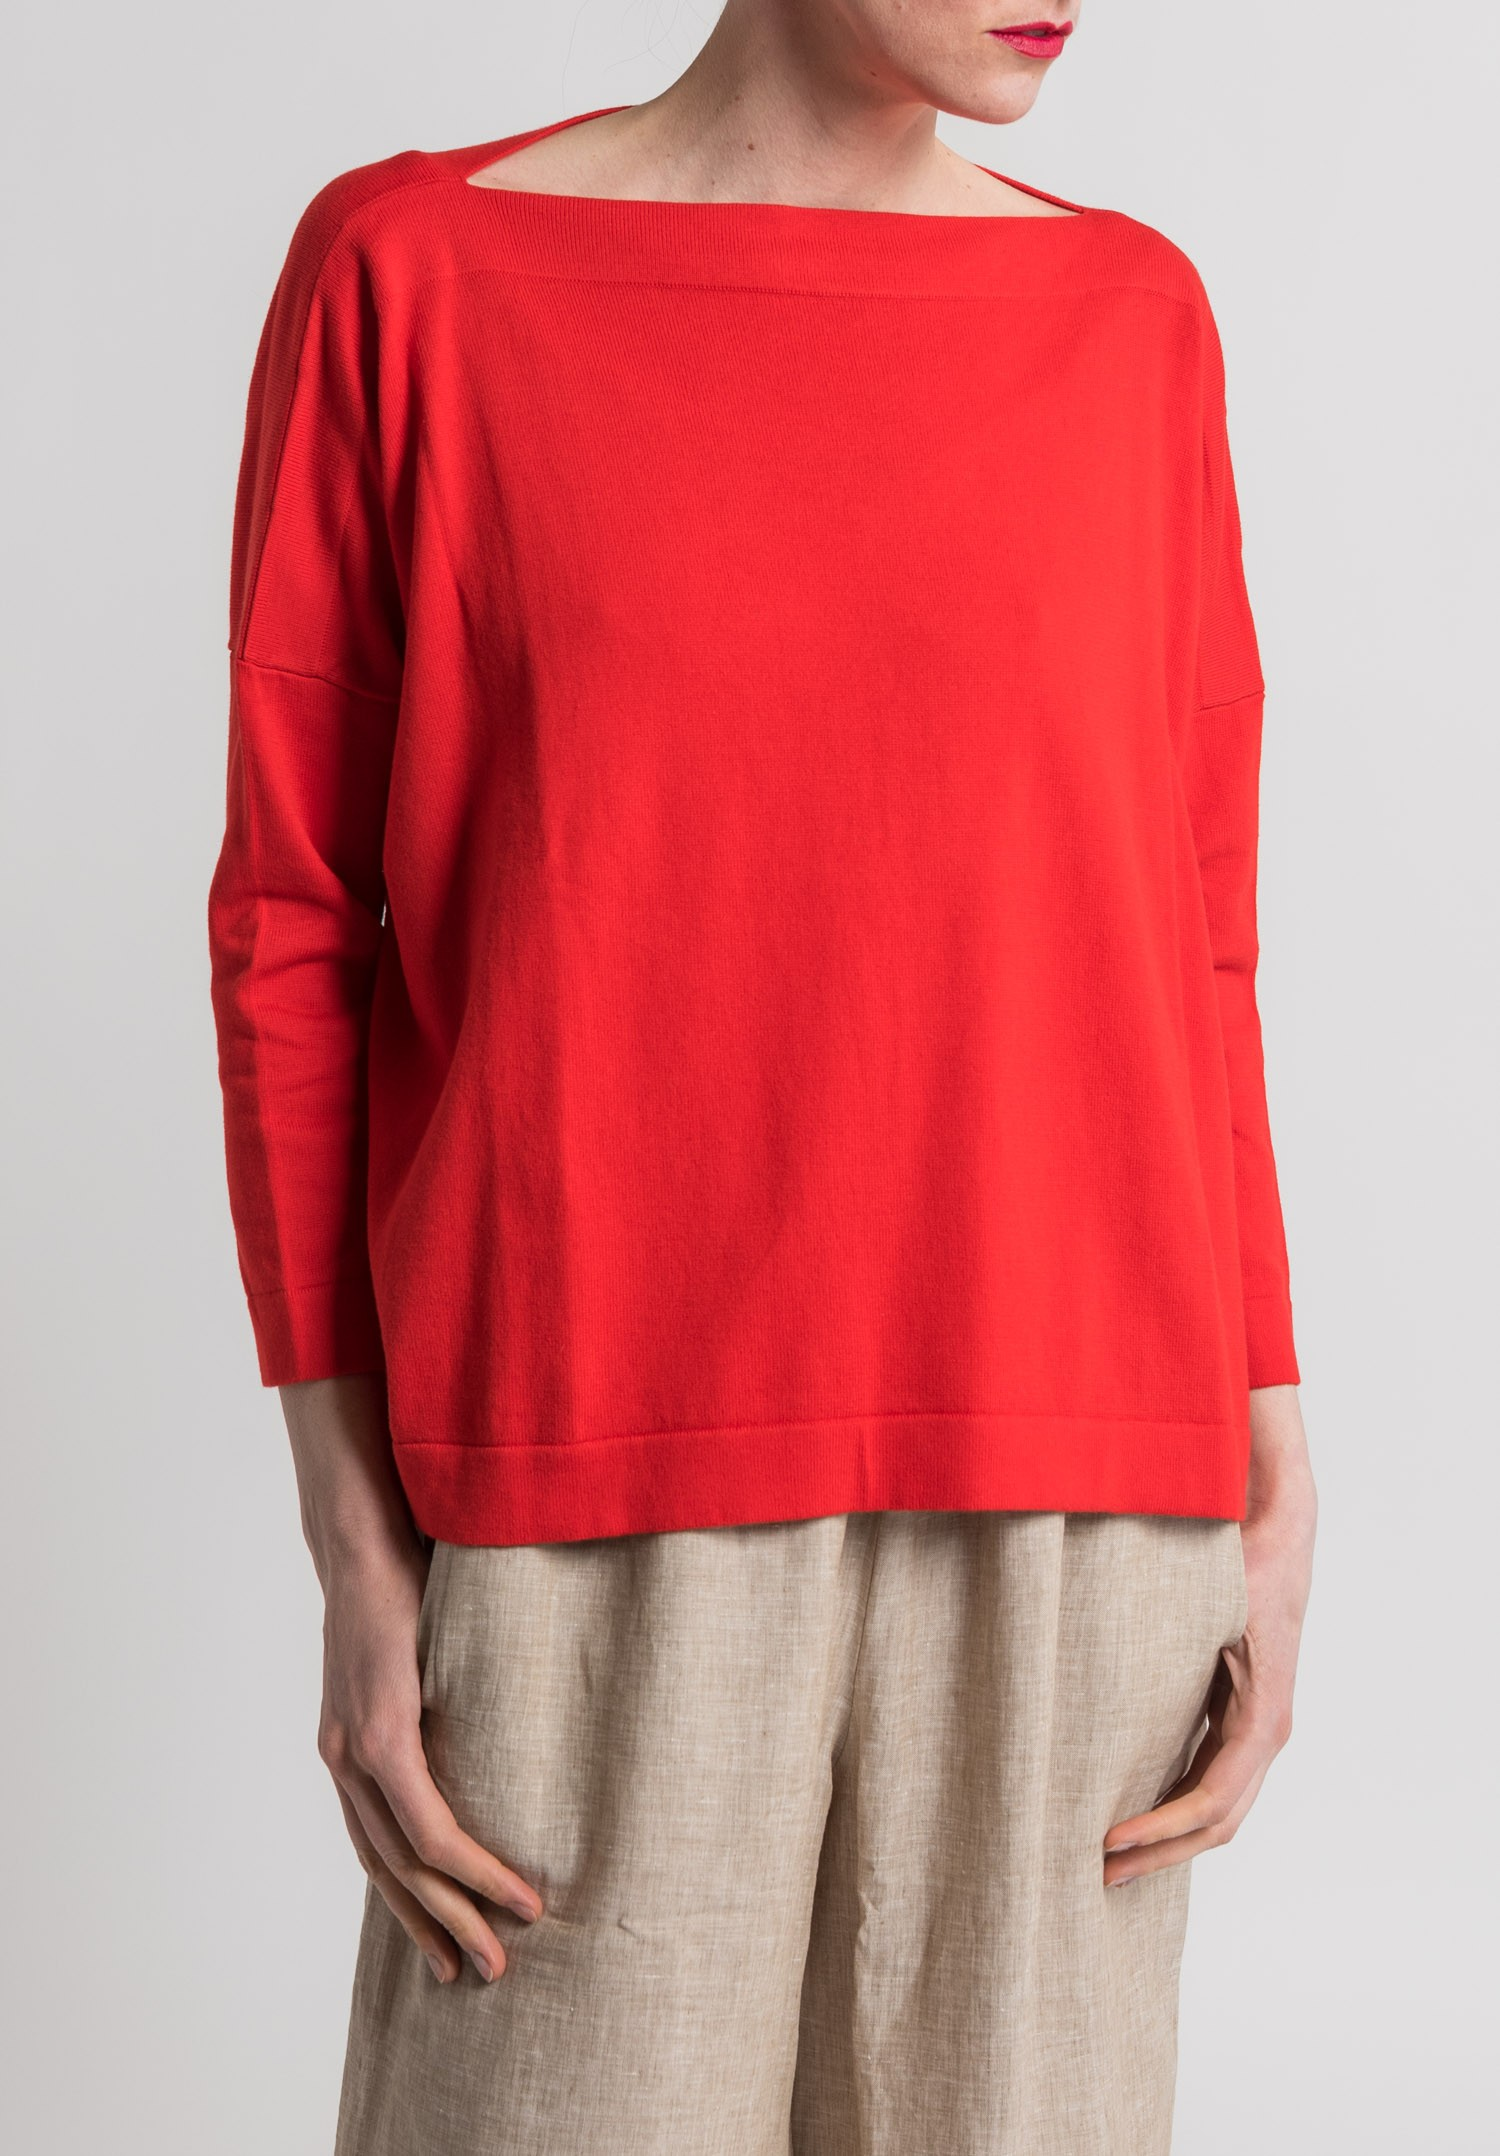 Daniela Gregis Cotton Boatneck Sweater in Red | Santa Fe Dry Goods